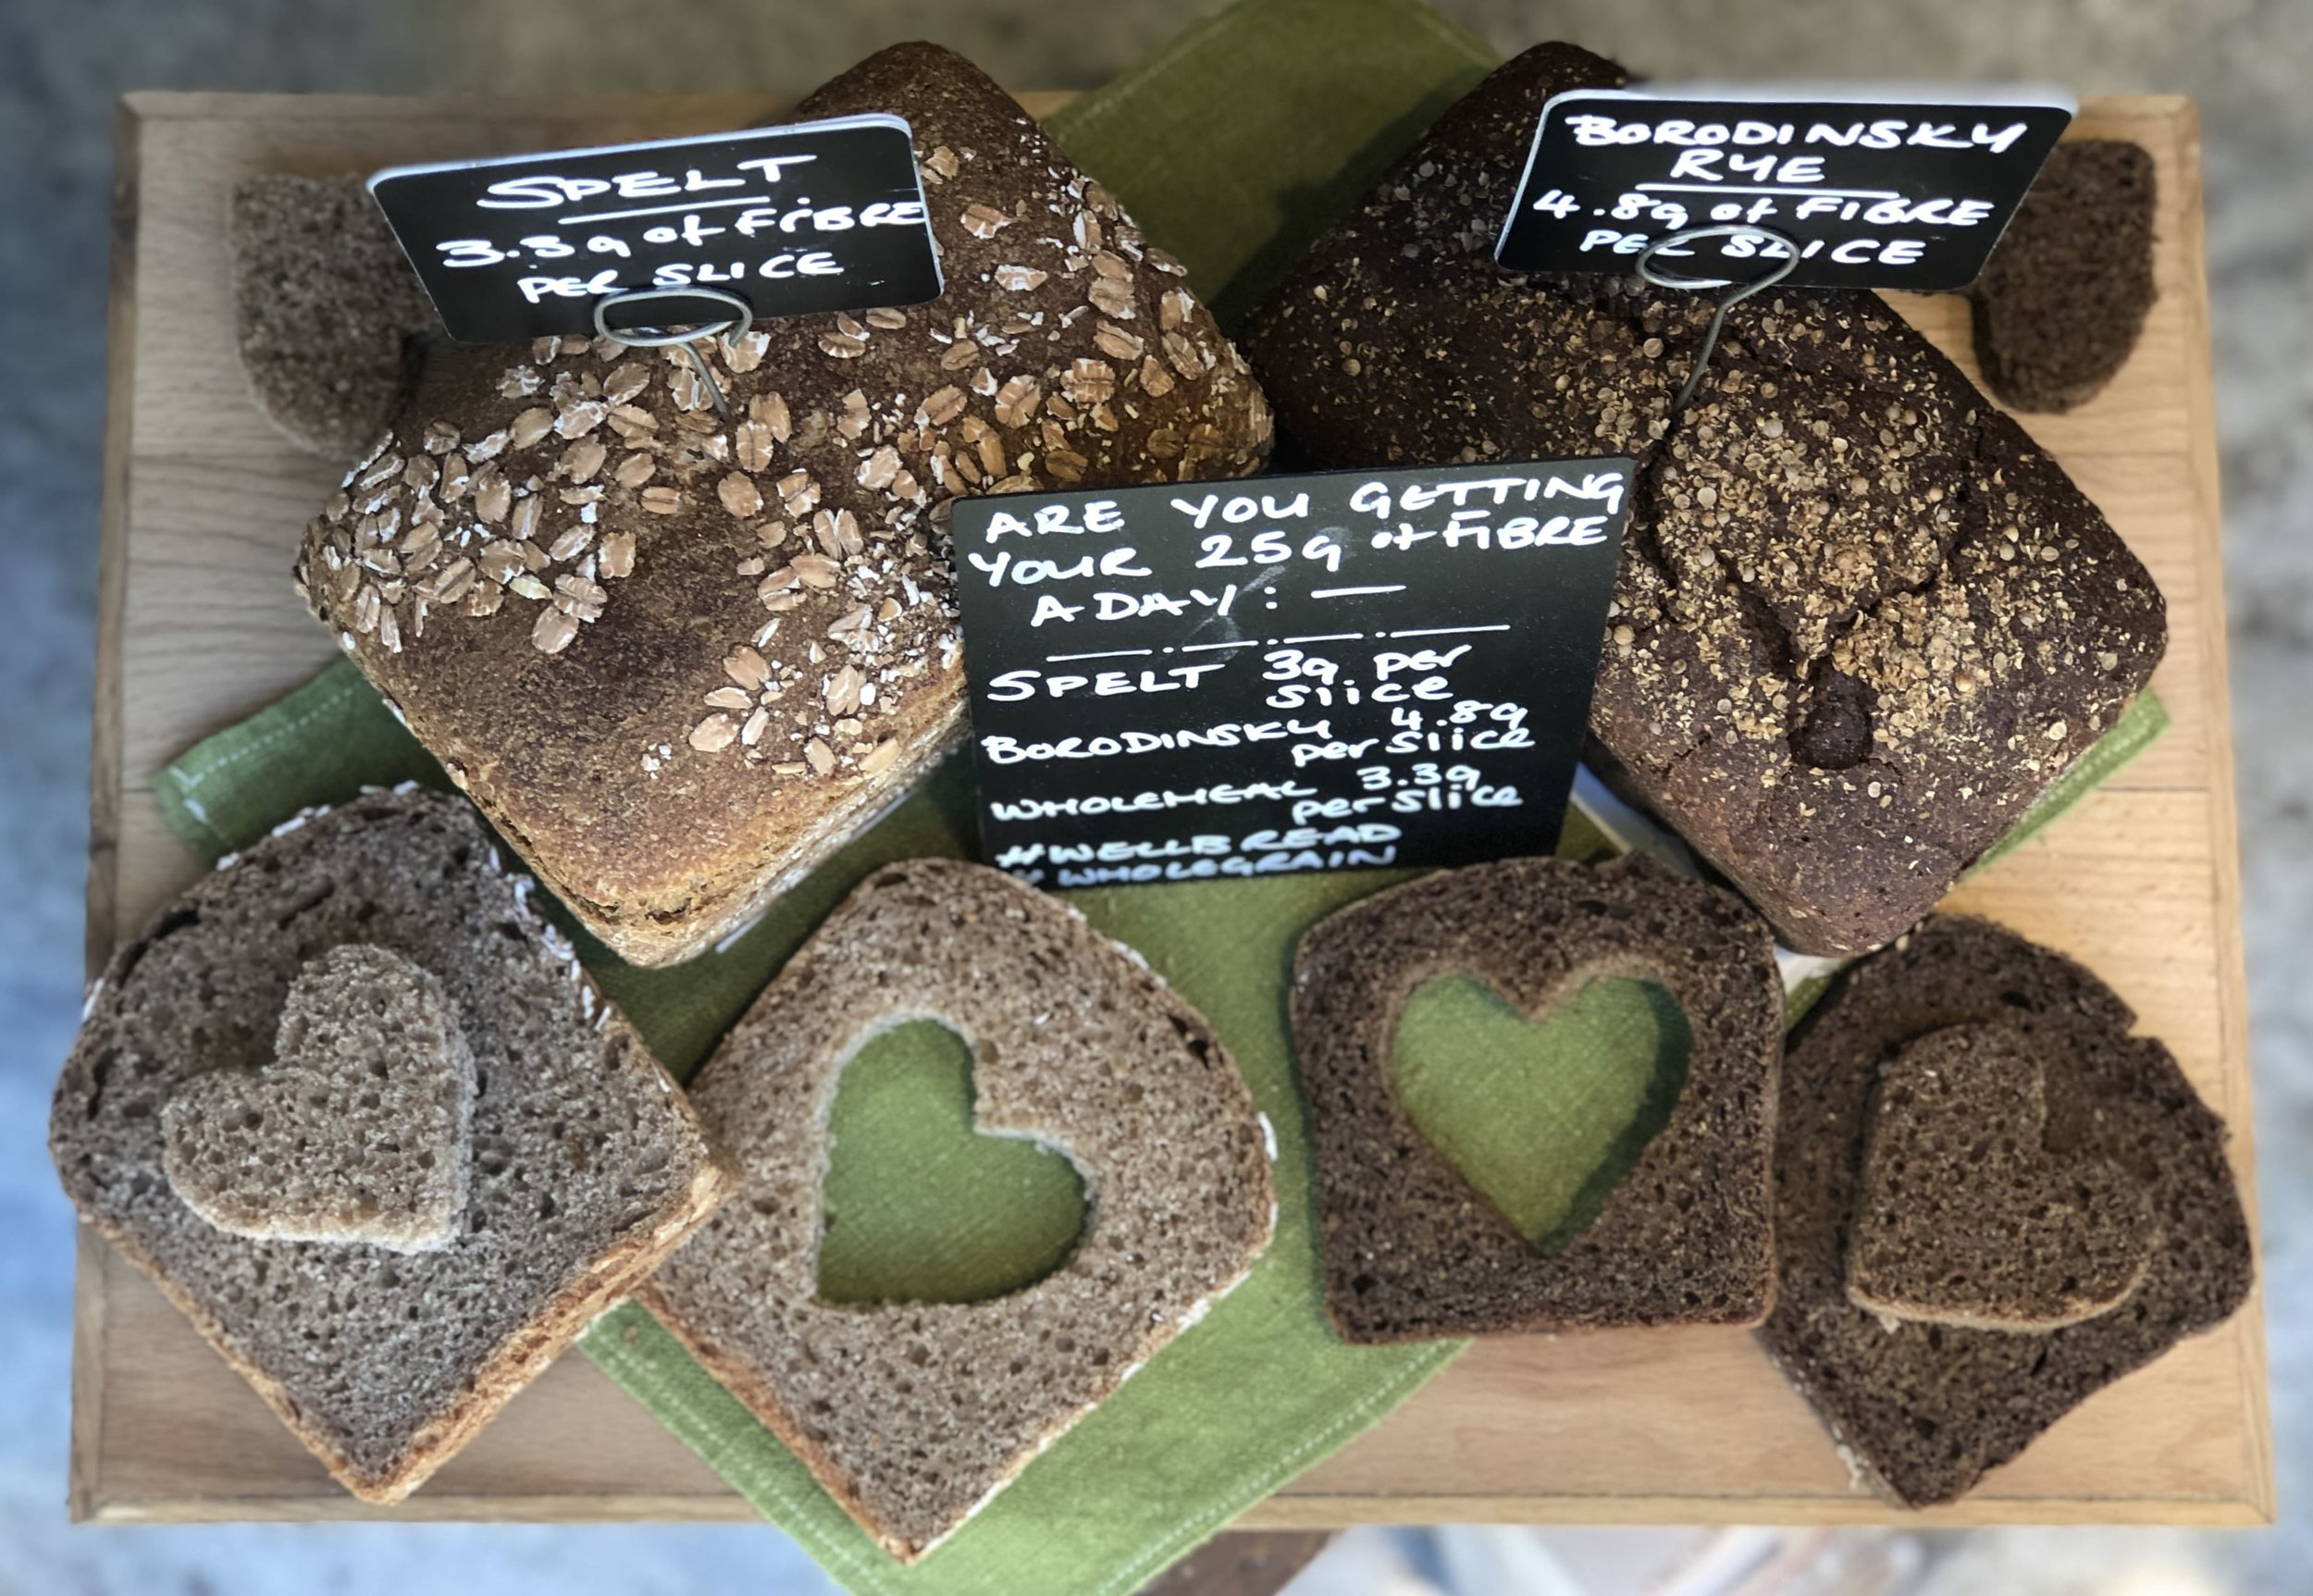 hambleton_bakery_real _ bread_week-hearts.jpeg